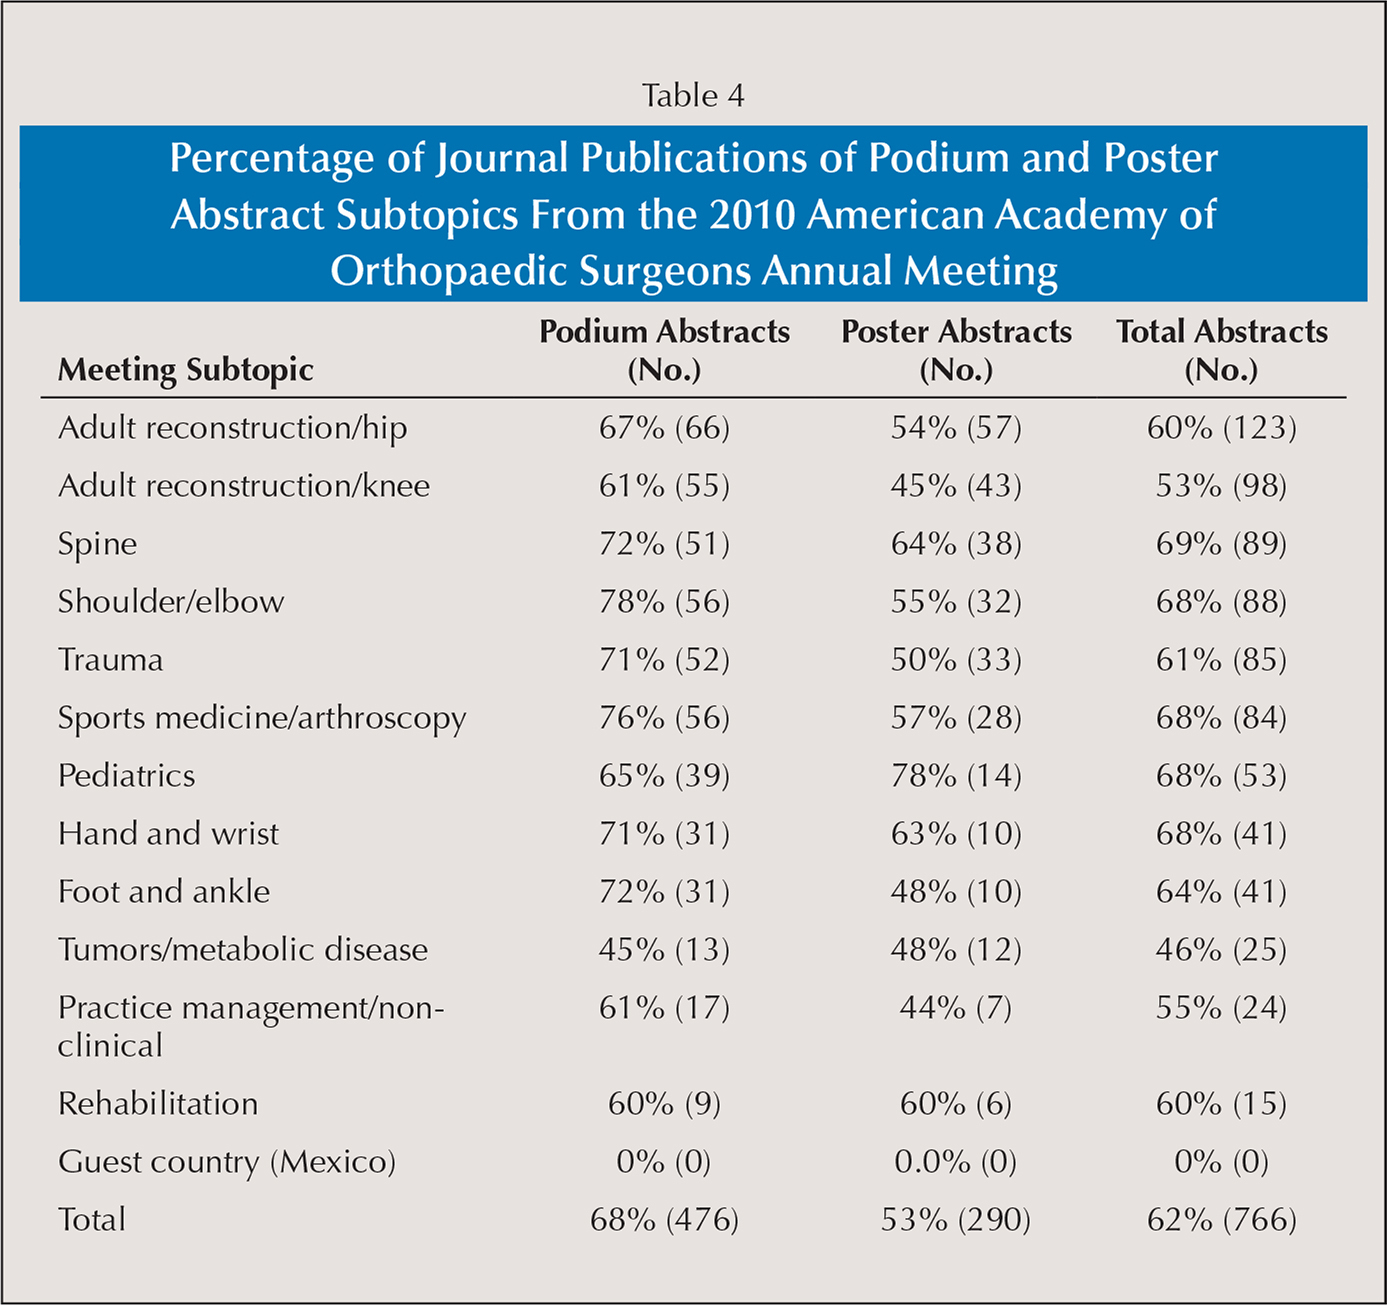 Percentage of Journal Publications of Podium and Poster Abstract Subtopics From the 2010 American Academy of Orthopaedic Surgeons Annual Meeting